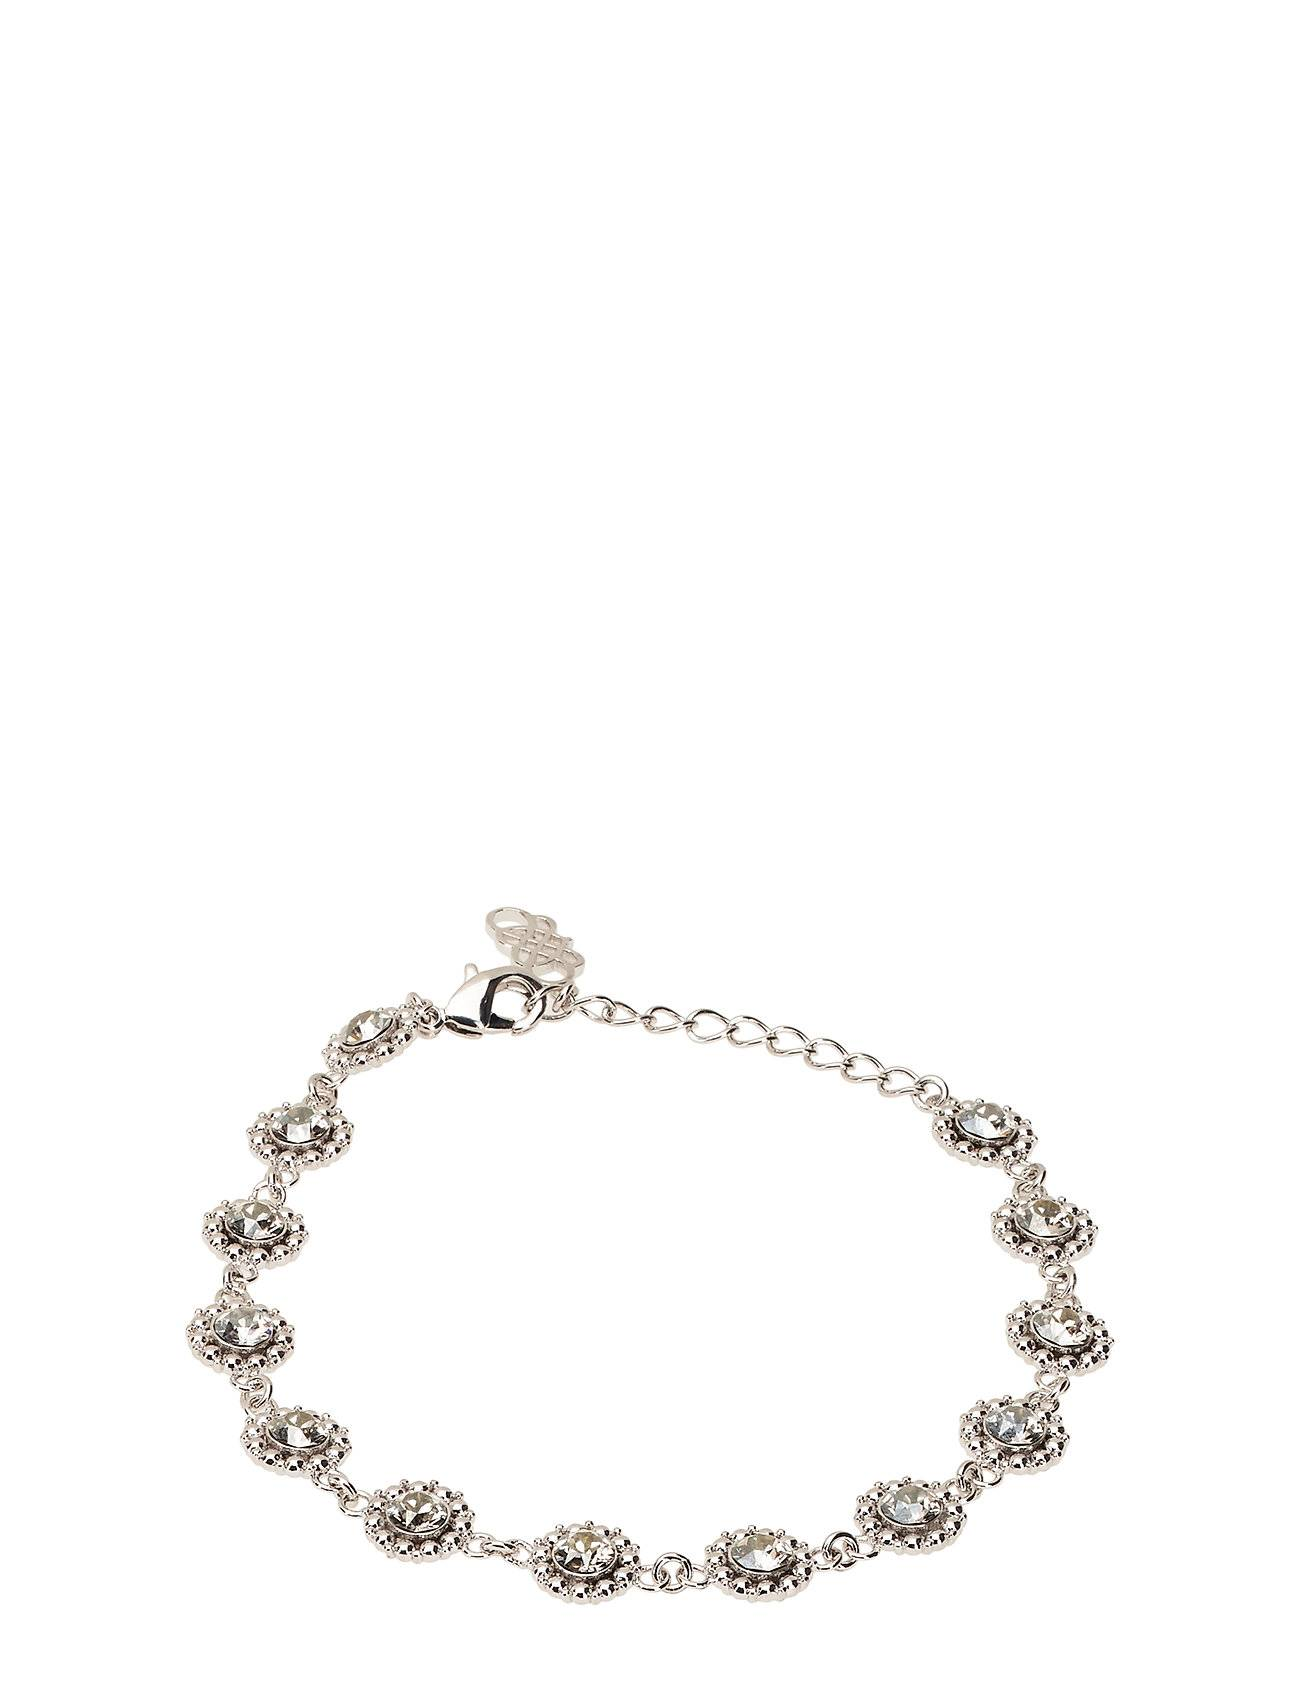 LILY AND ROSE Petite Kate Bracelet - Crystal Accessories Jewellery Bracelets Chain Bracelets Hopea LILY AND ROSE